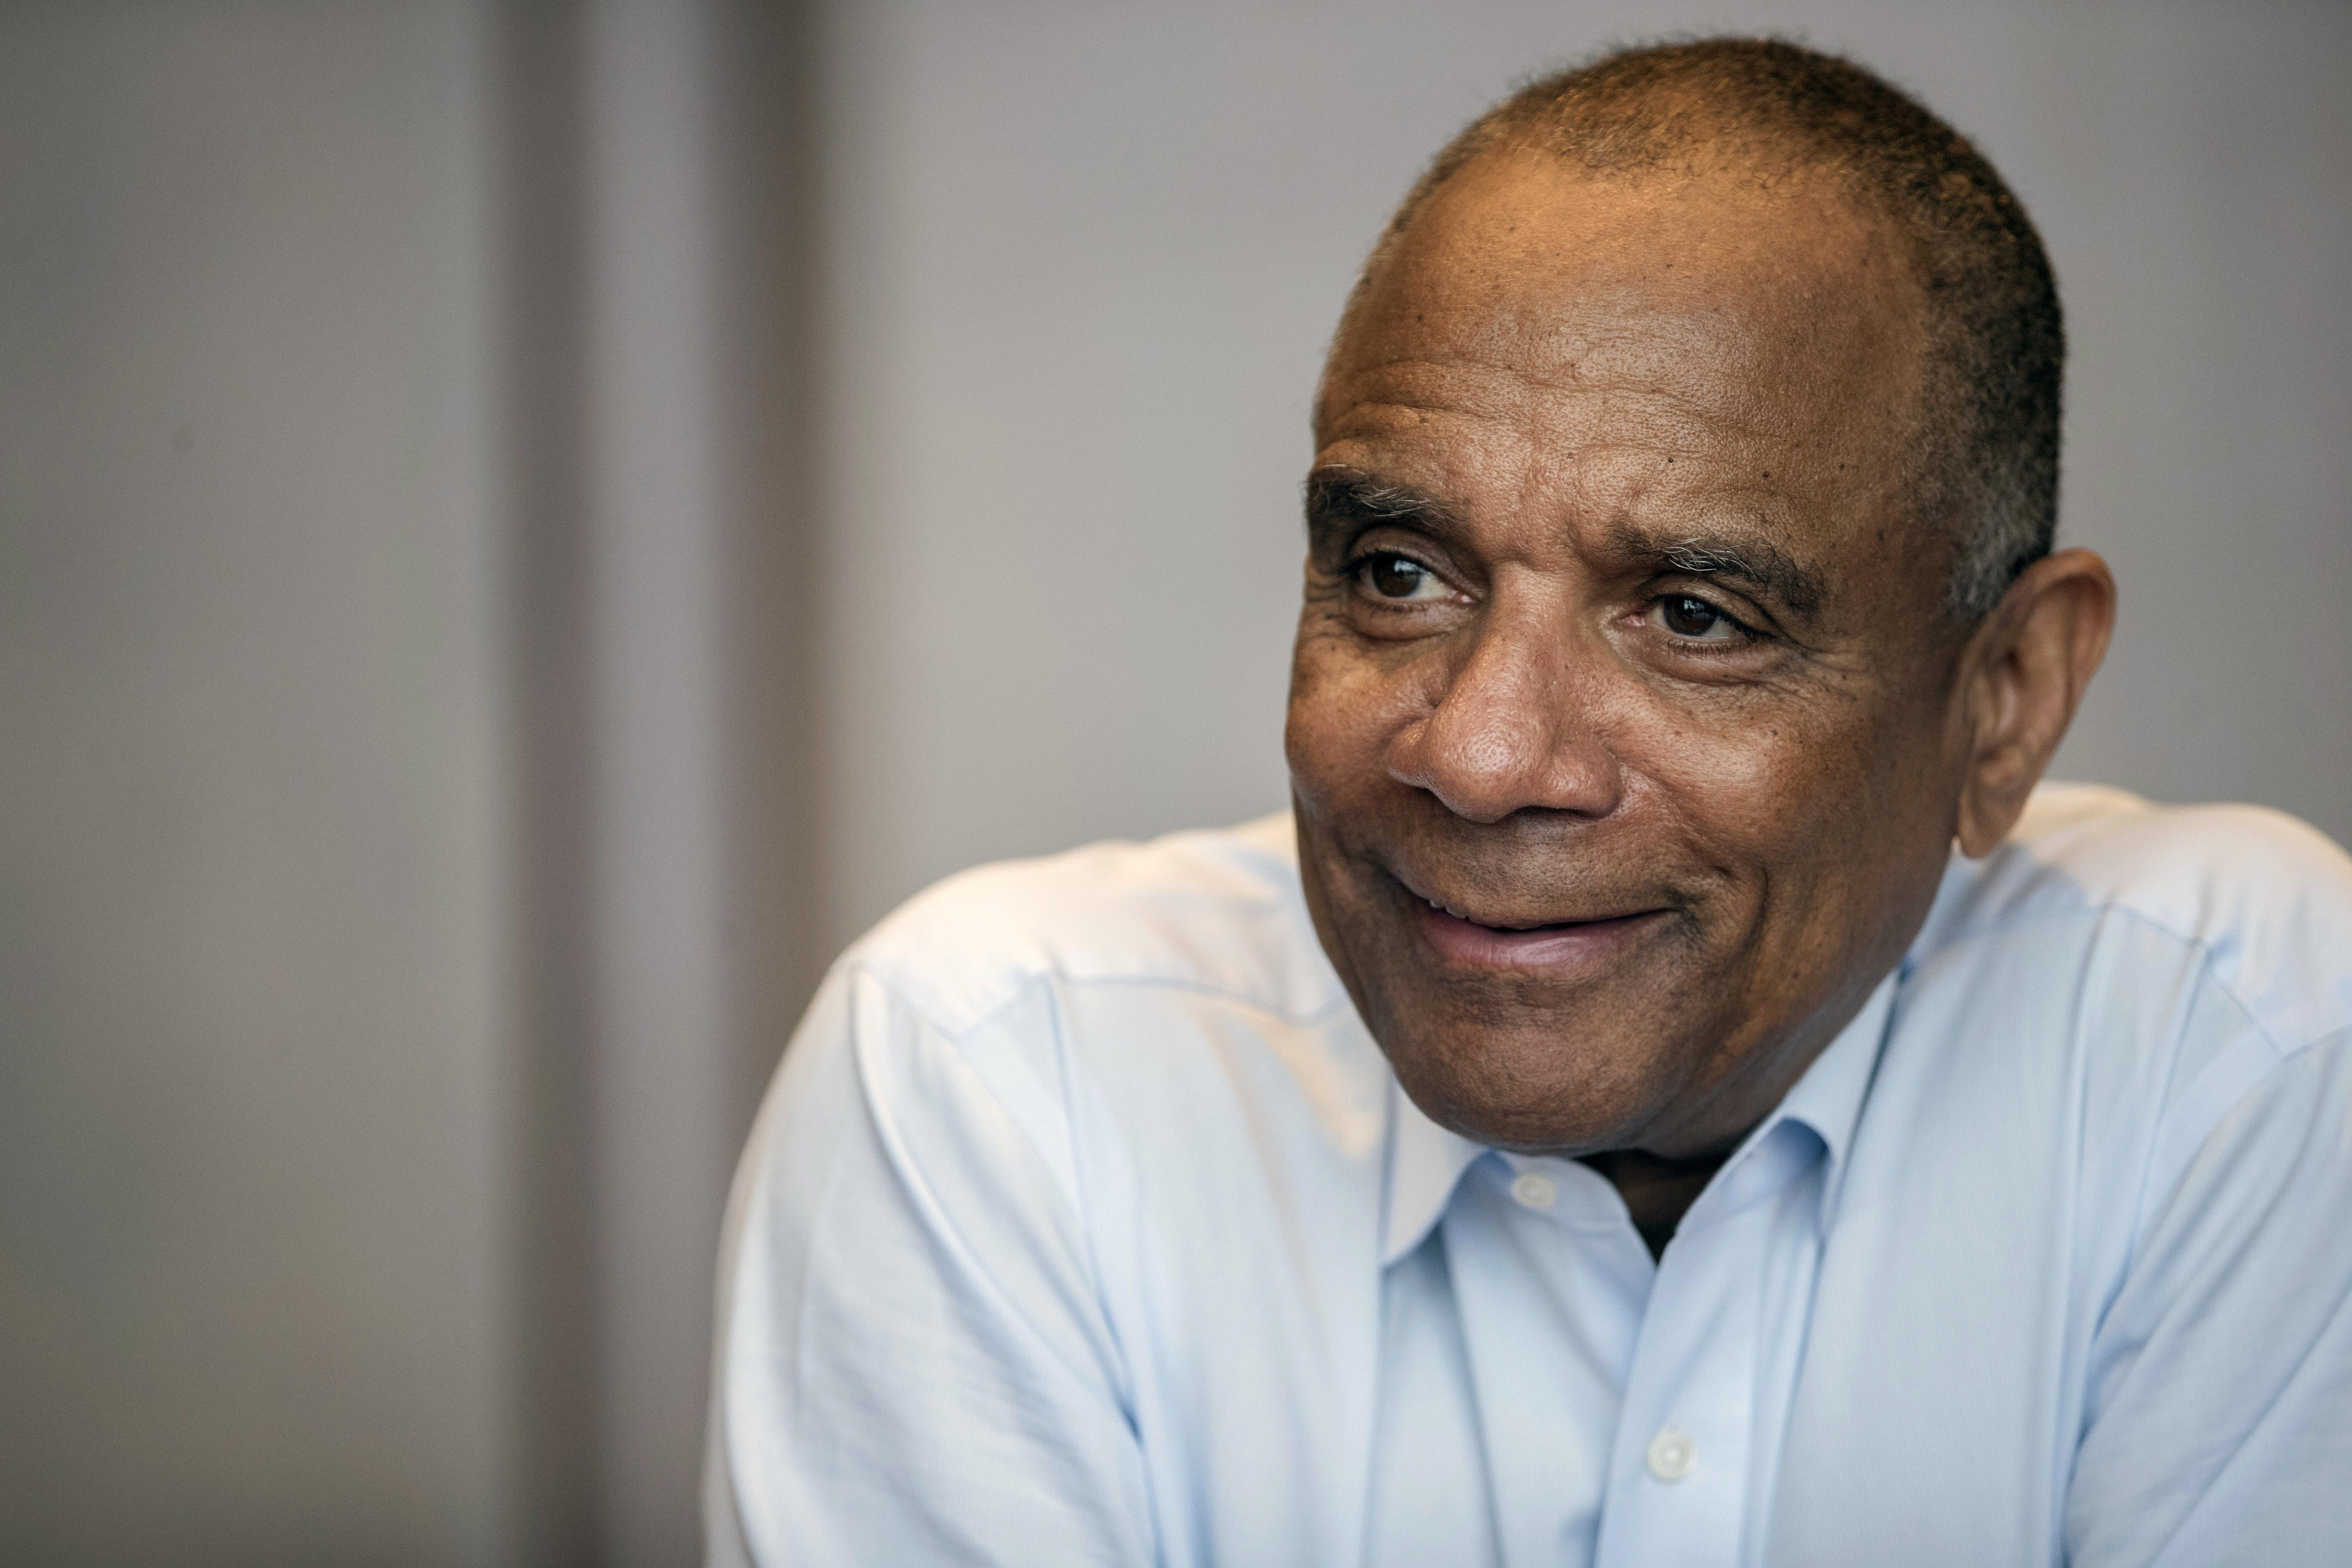 Chenault dealt with crises, competition as head of AmEx | The